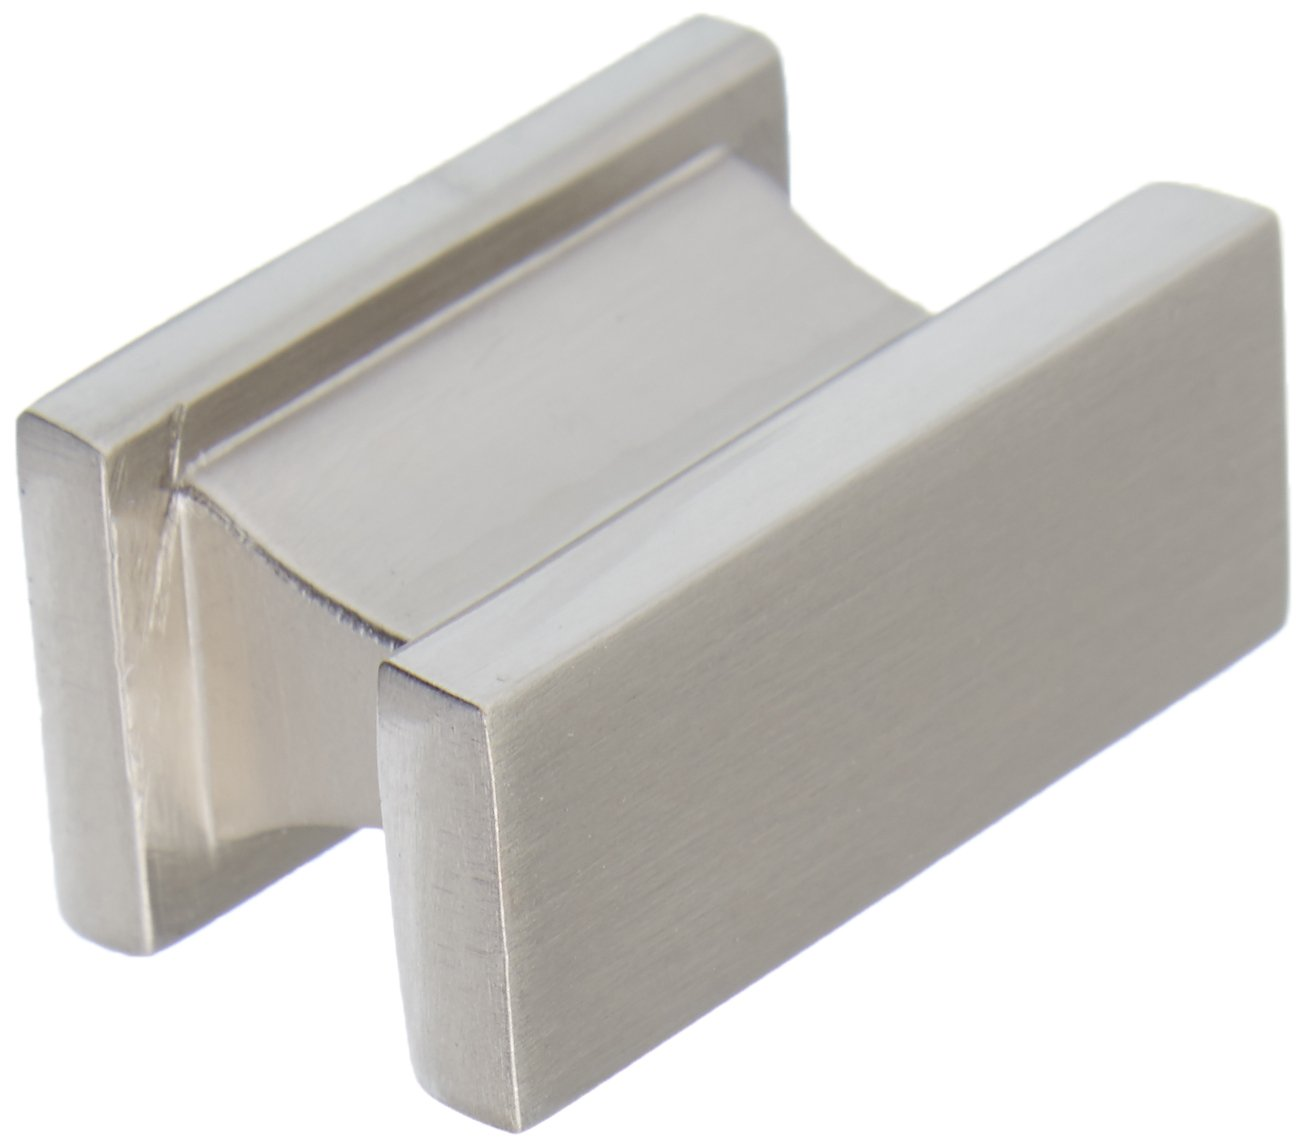 Southern Hills Brushed Nickel Cabinet Knob - Rectangle -Satin Nickel - Pack of 5 - Kitchen Cabinet Knobs - Drawer Pulls Hardware - SHKM001-SN-5